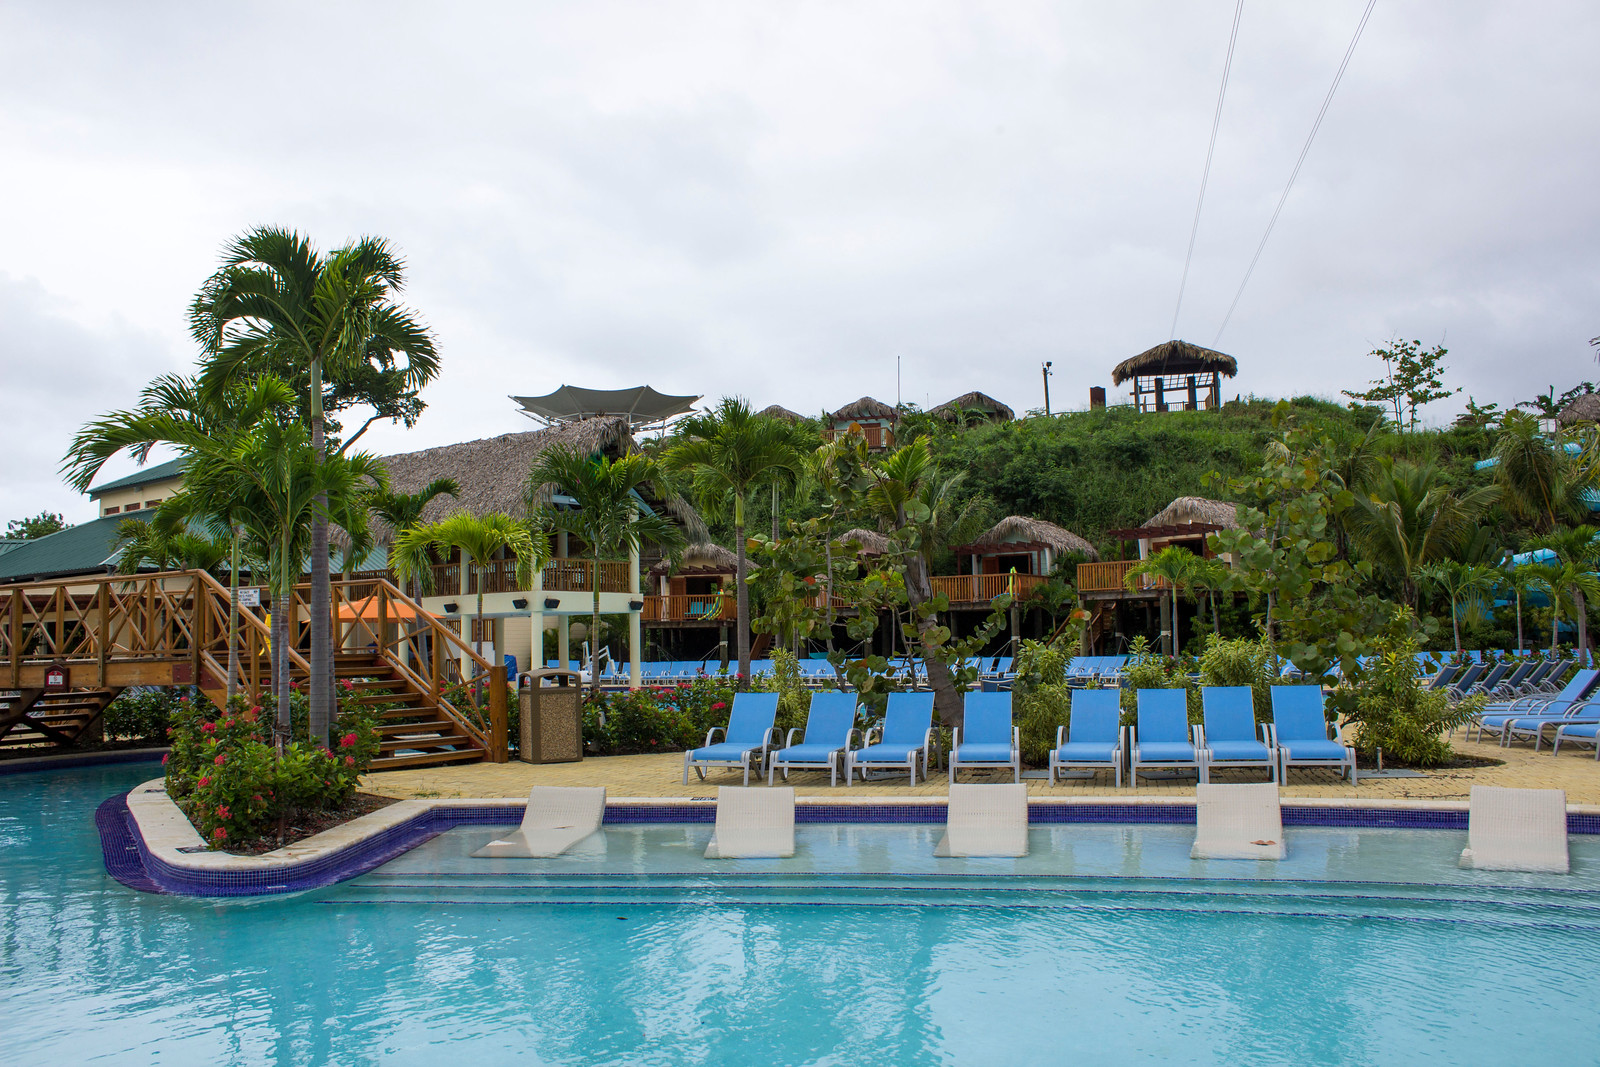 Amber Cove Dominican Republic Cruise Ship Port Guide - Swimming pool